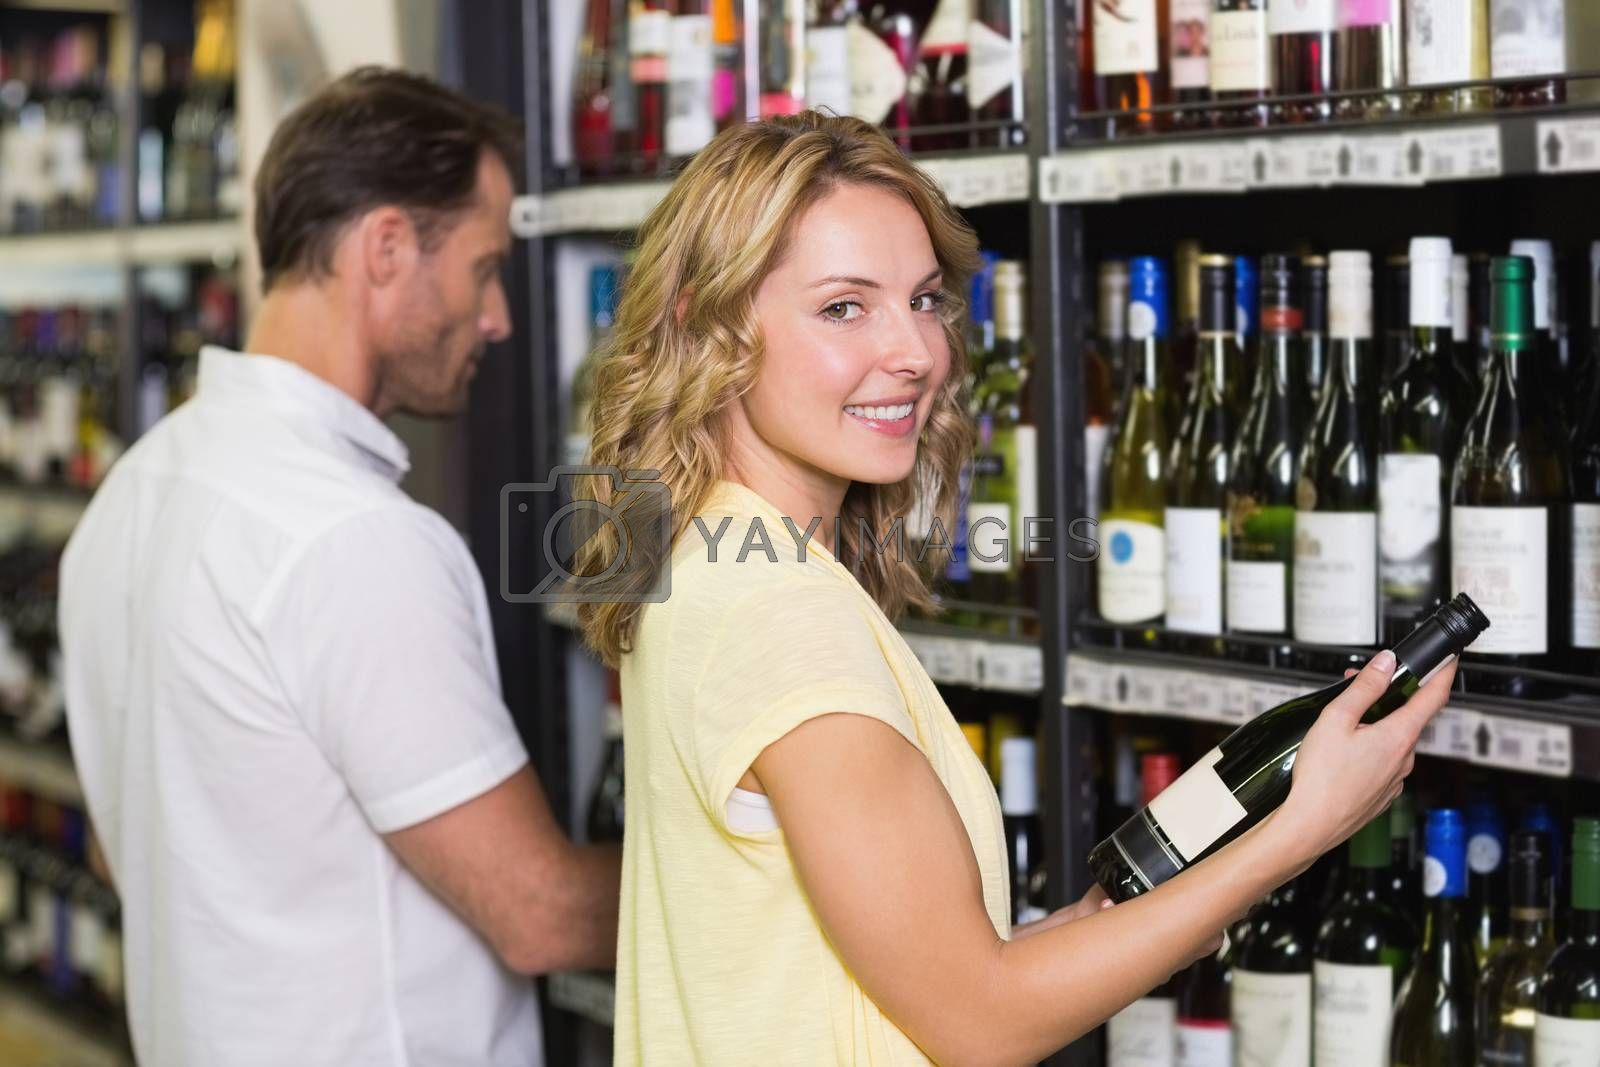 Royalty free image of Portrait of a smiling pretty woman looking at wine bottle  by Wavebreakmedia